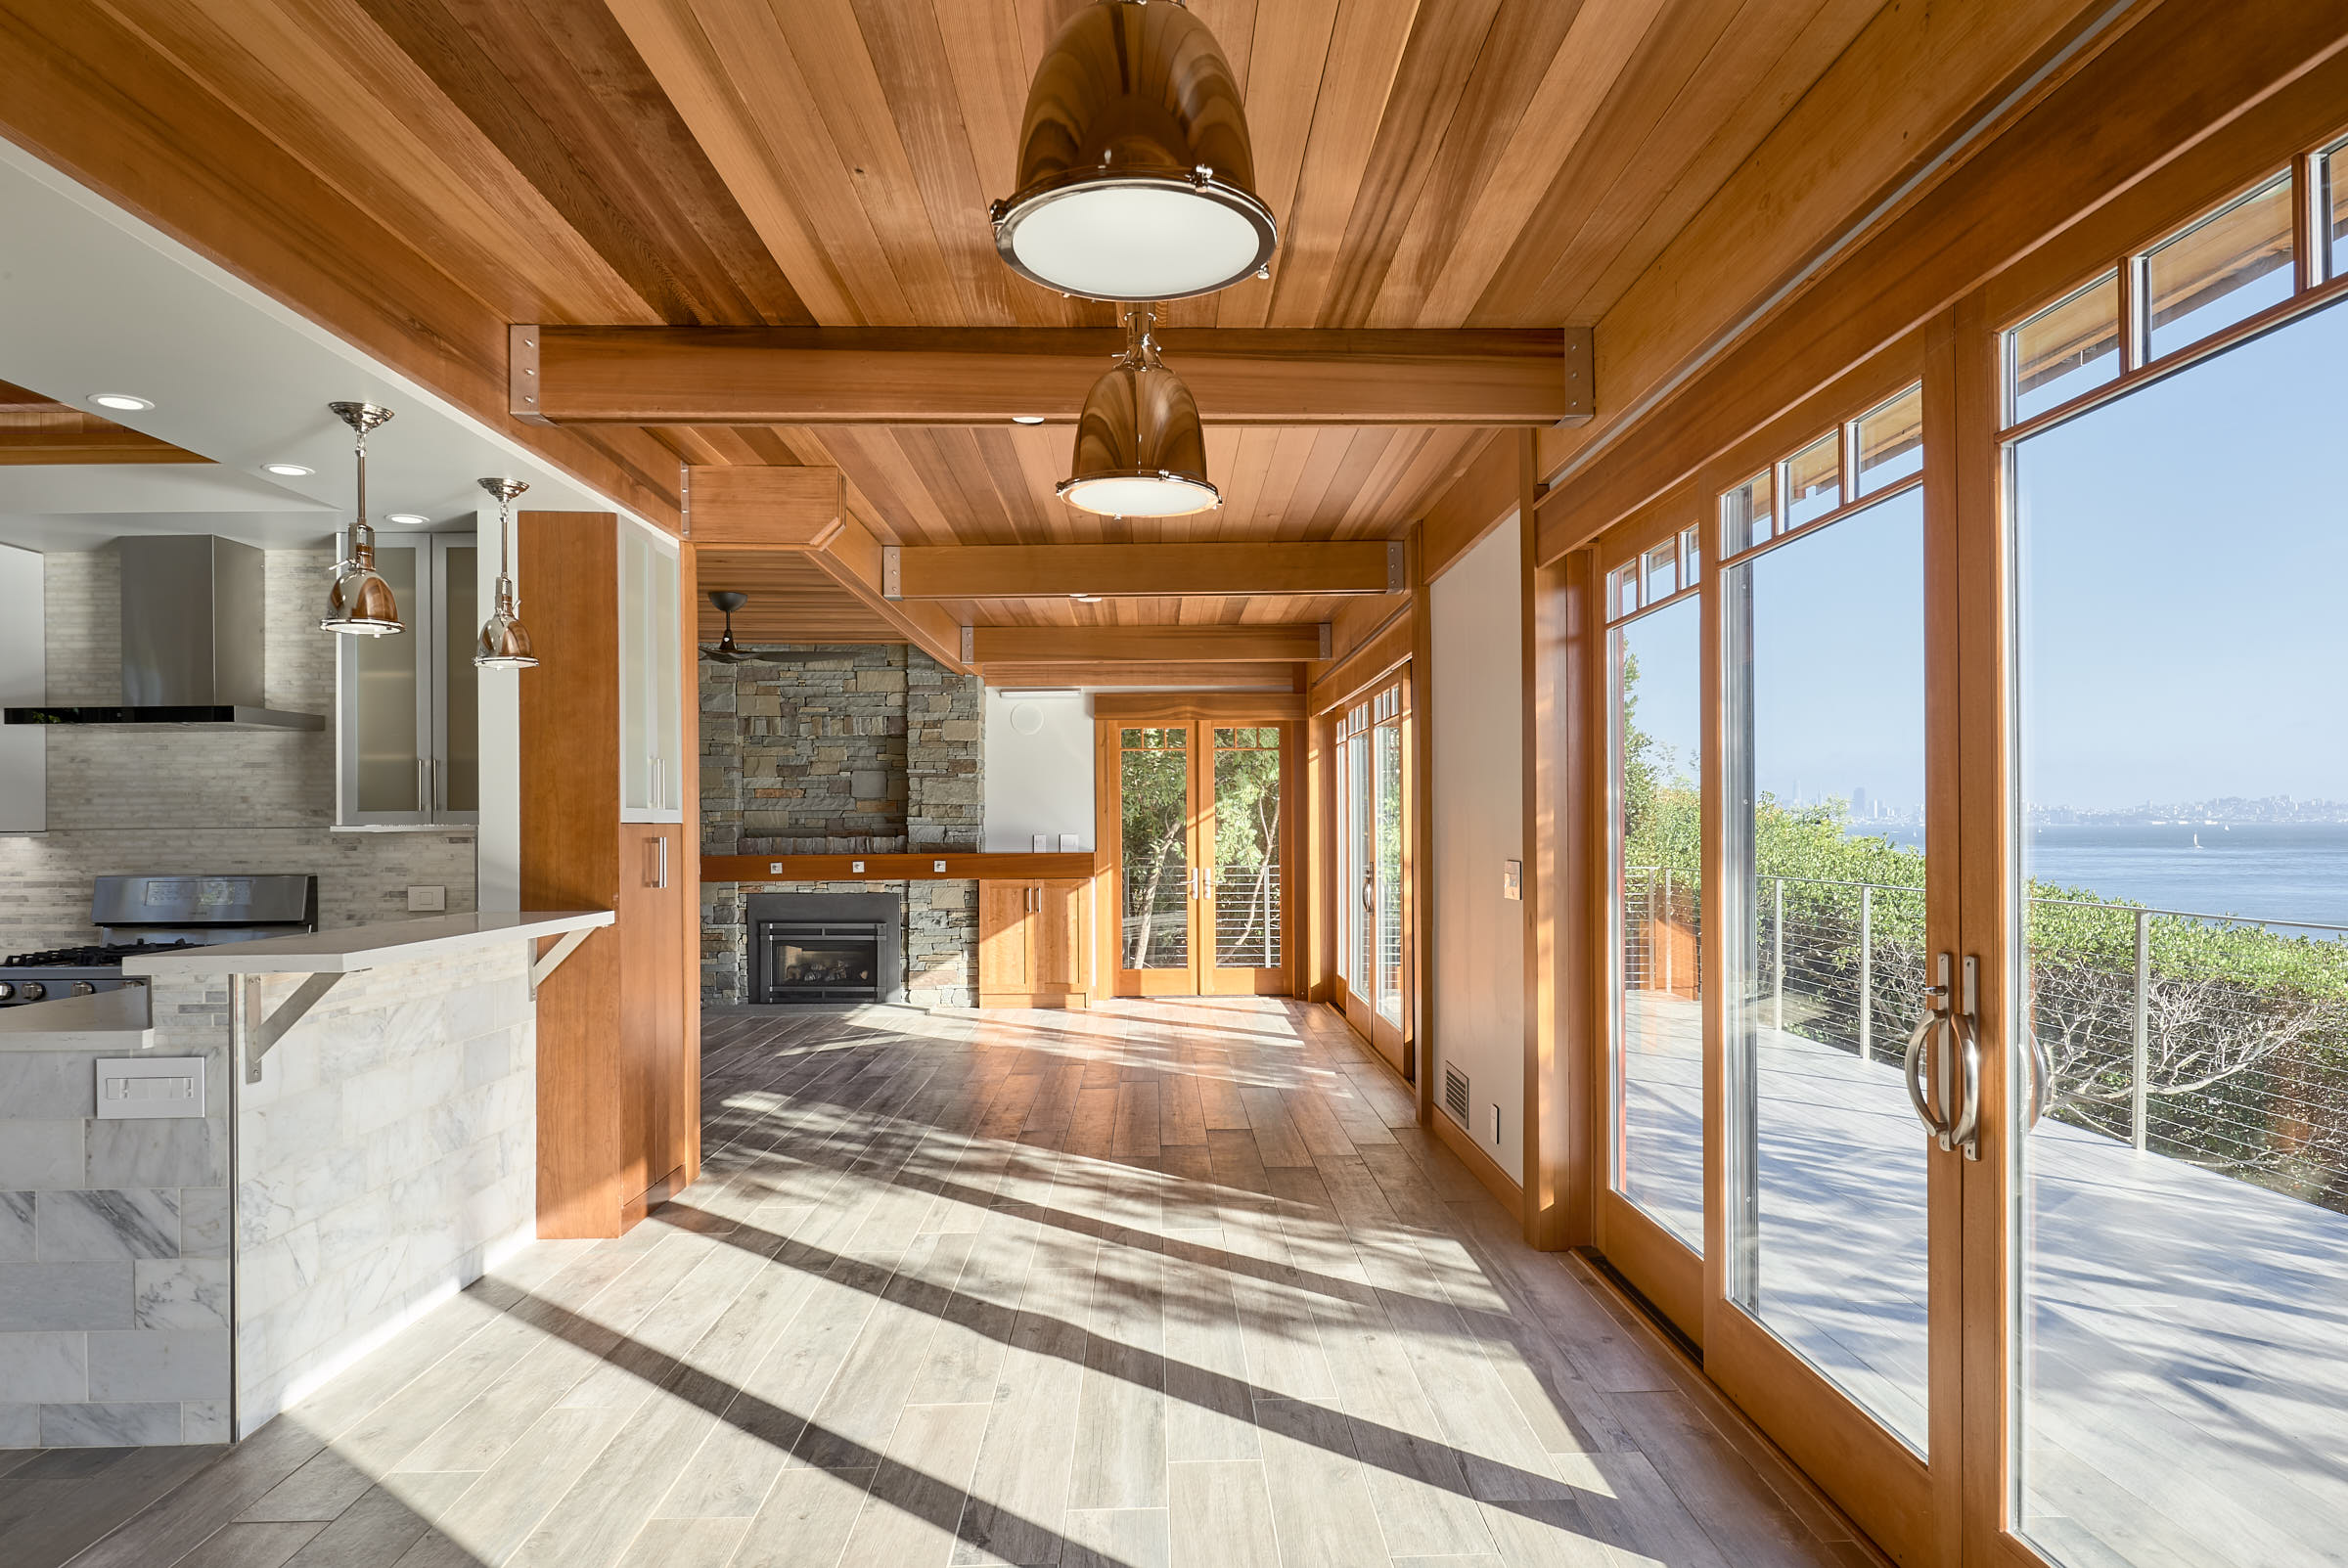 Now you can see the view from the kitchen is pretty spectacular. Porcelain tile Floors throughout continue onto the deck.